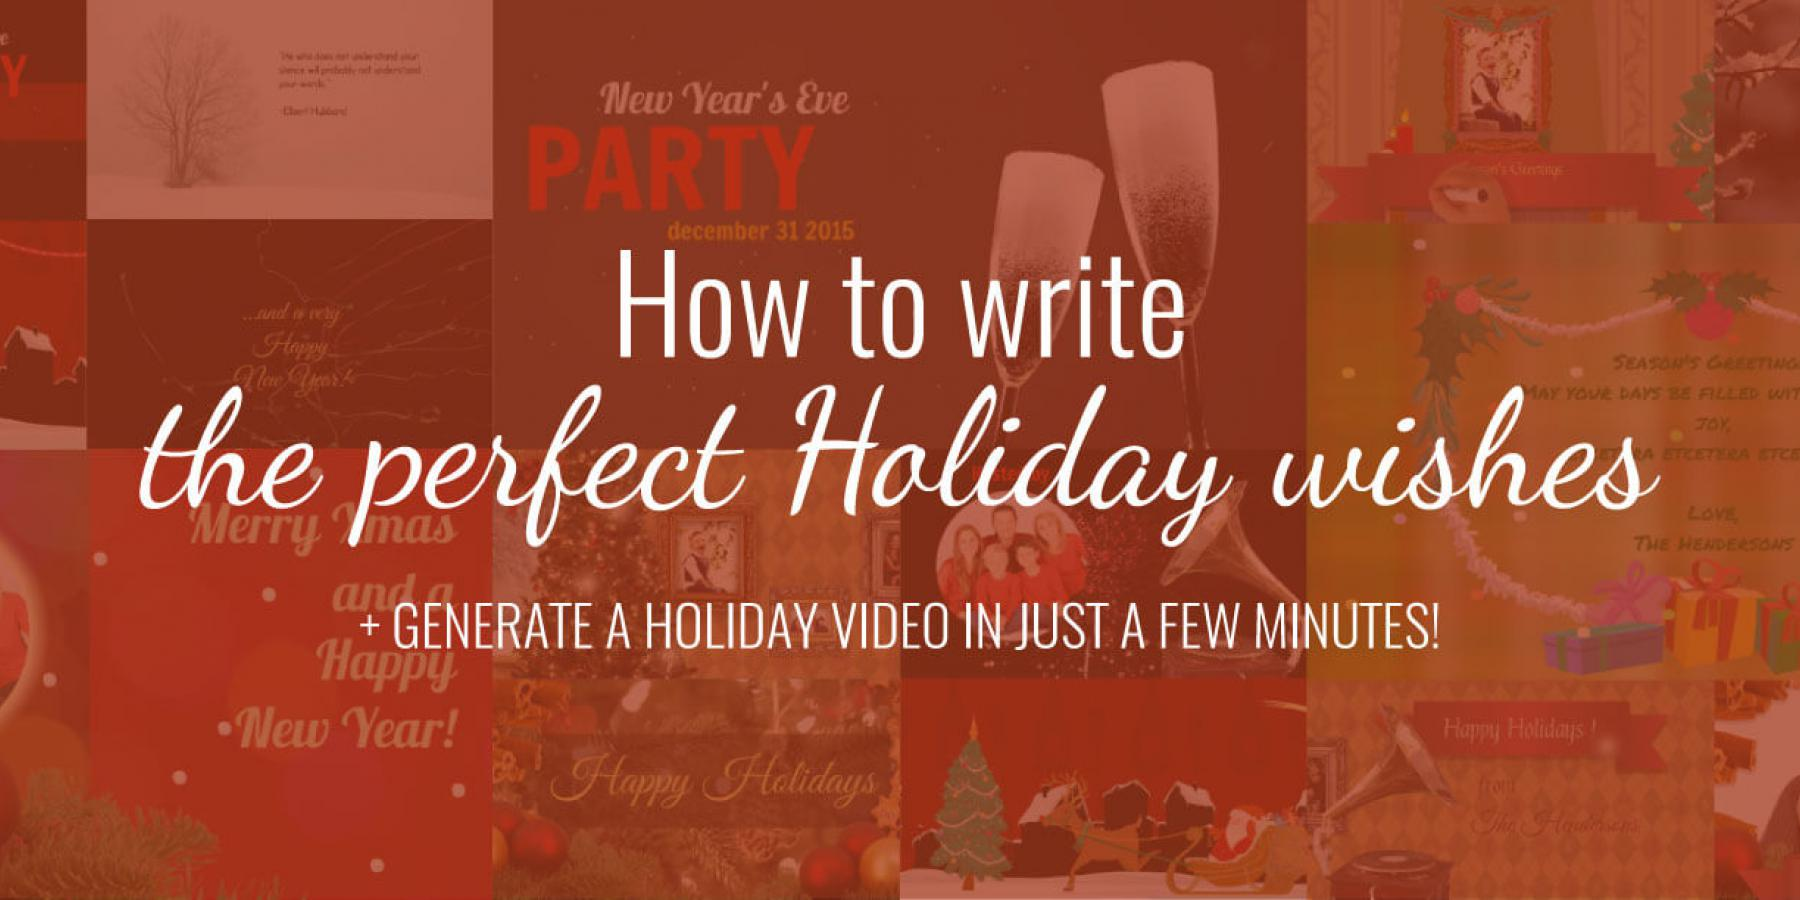 How to write the perfect holiday wishes moovly holiday wishes generate free video make christmas animation m4hsunfo